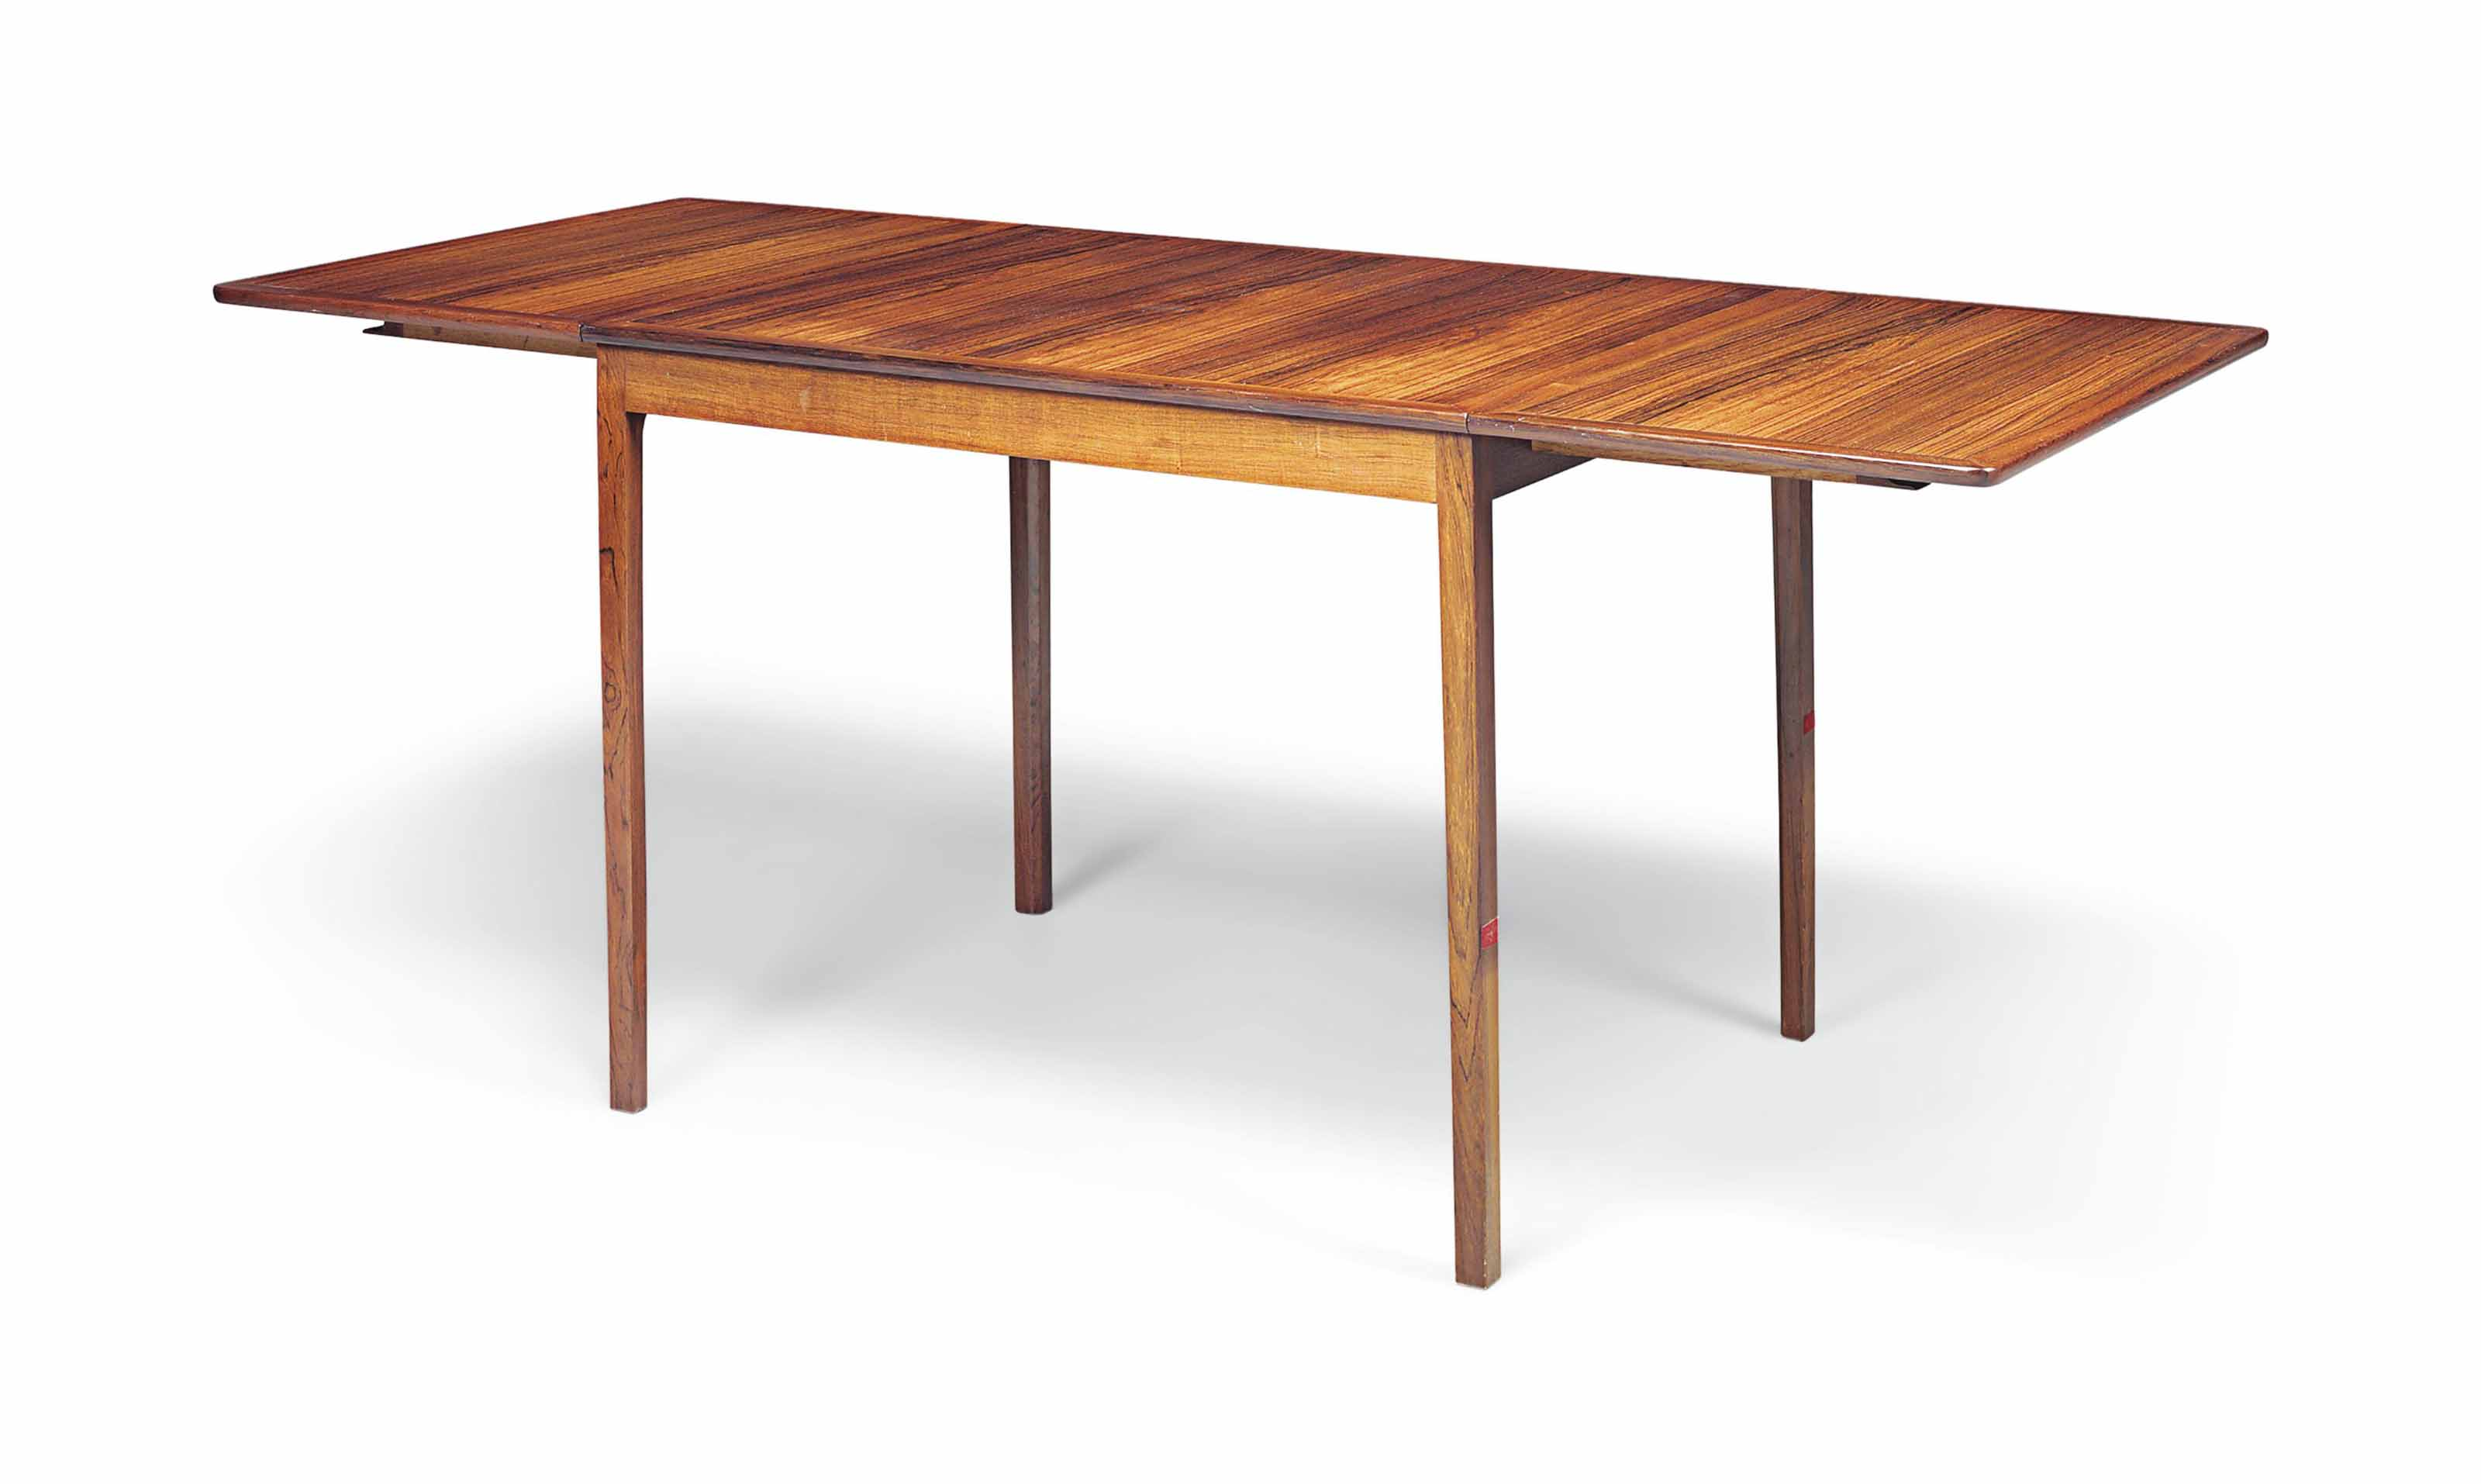 AN OLE WANSCHER (1903-1985) BRAZILIAN ROSEWOOD EXTENDING DINING TABLE